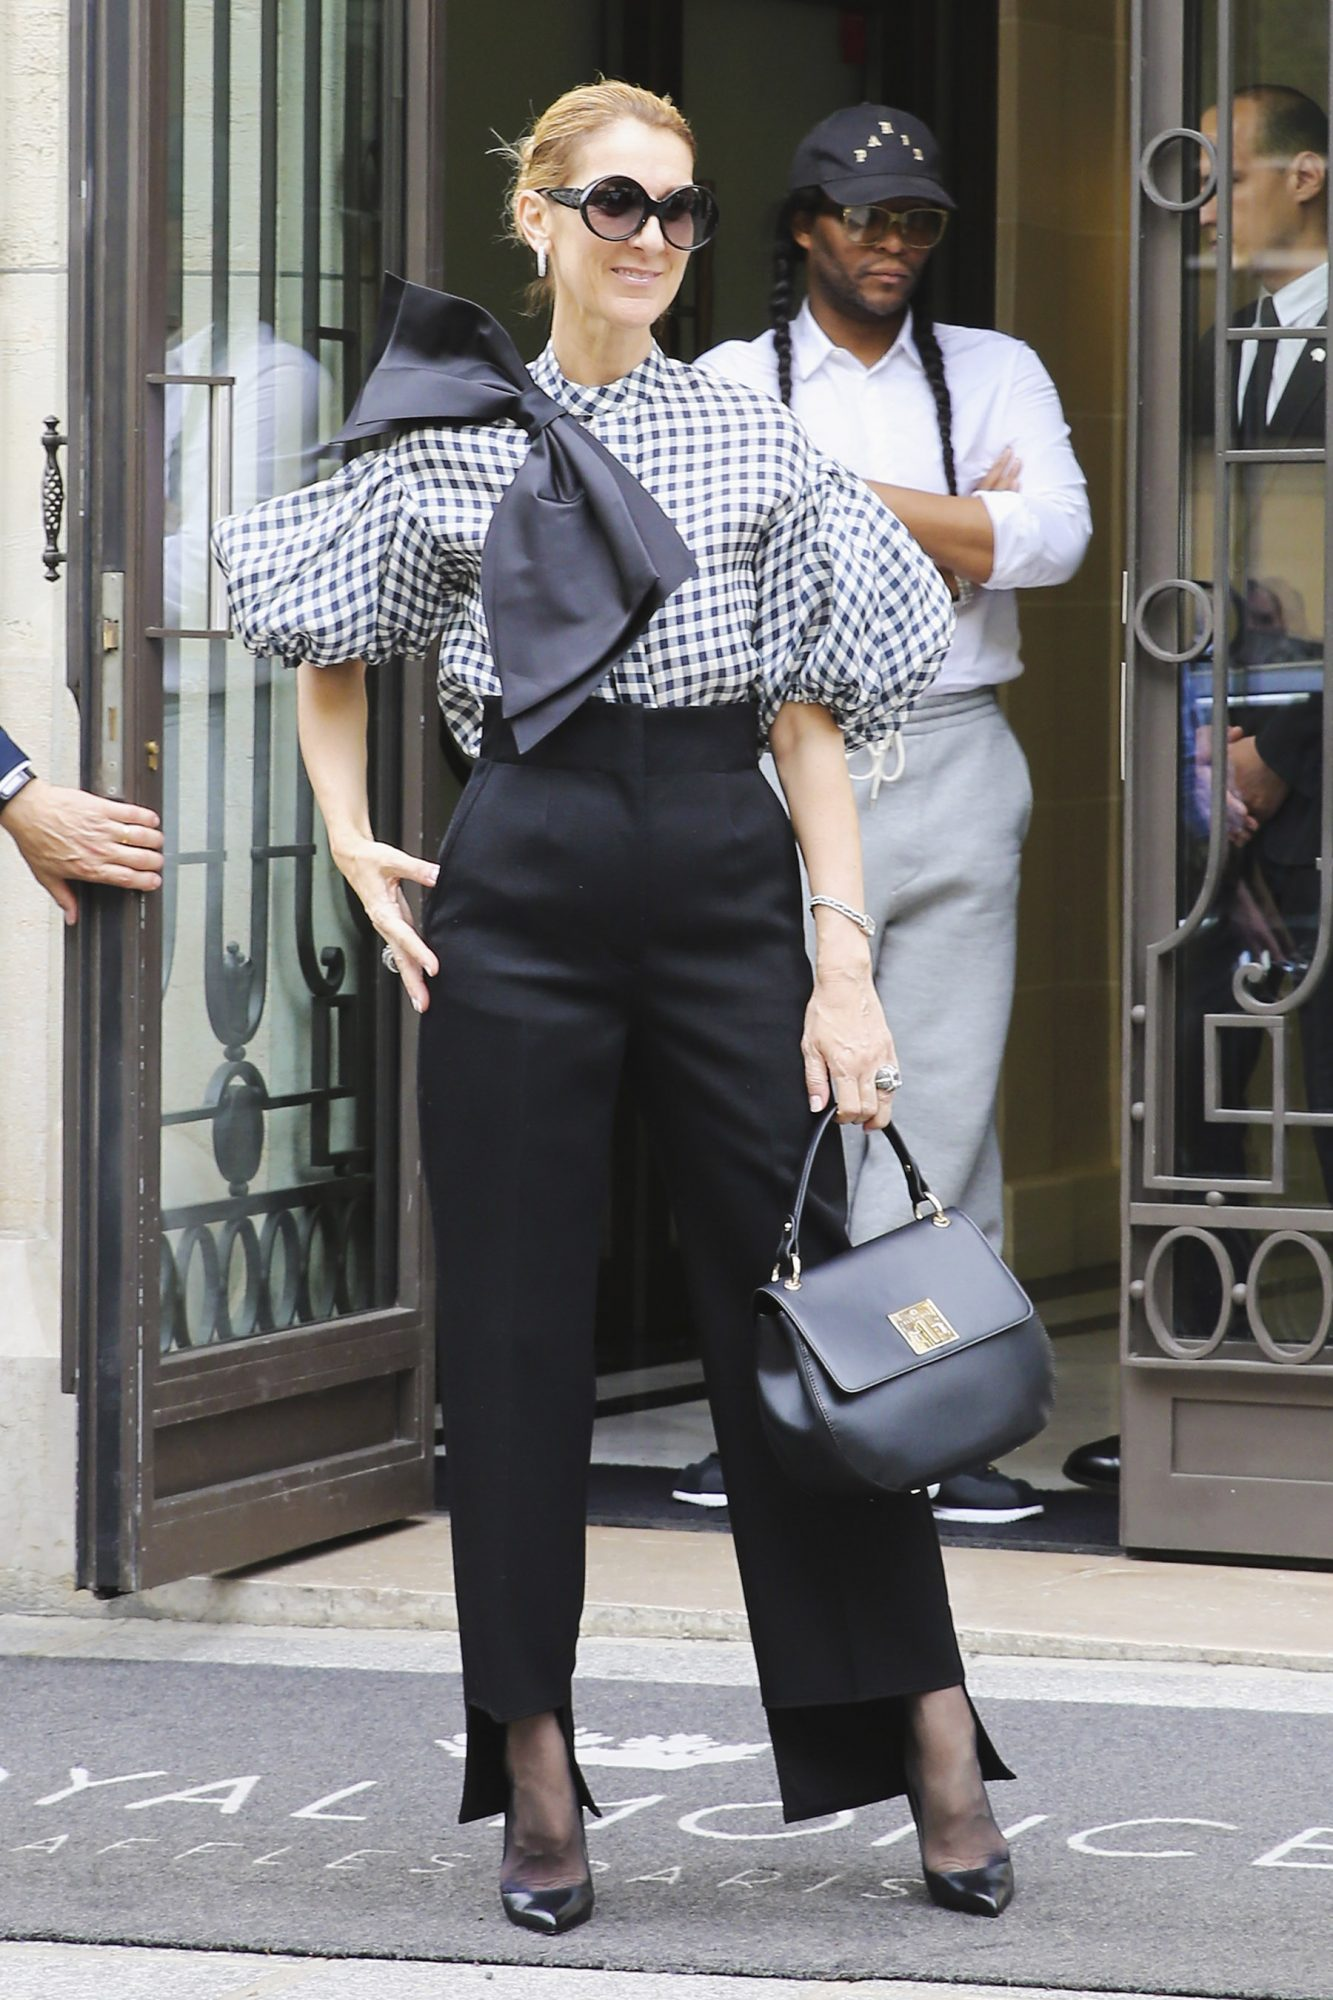 PARIS, FRANCE - JULY 06: Singer Celine Dion seen wearing Dice Kayek top, Celine pants, Tom Ford shoes and bag from Celine Dion Collection on July 6, 2017 in Paris, France. (Photo by Mireya Acierto/GC Images)